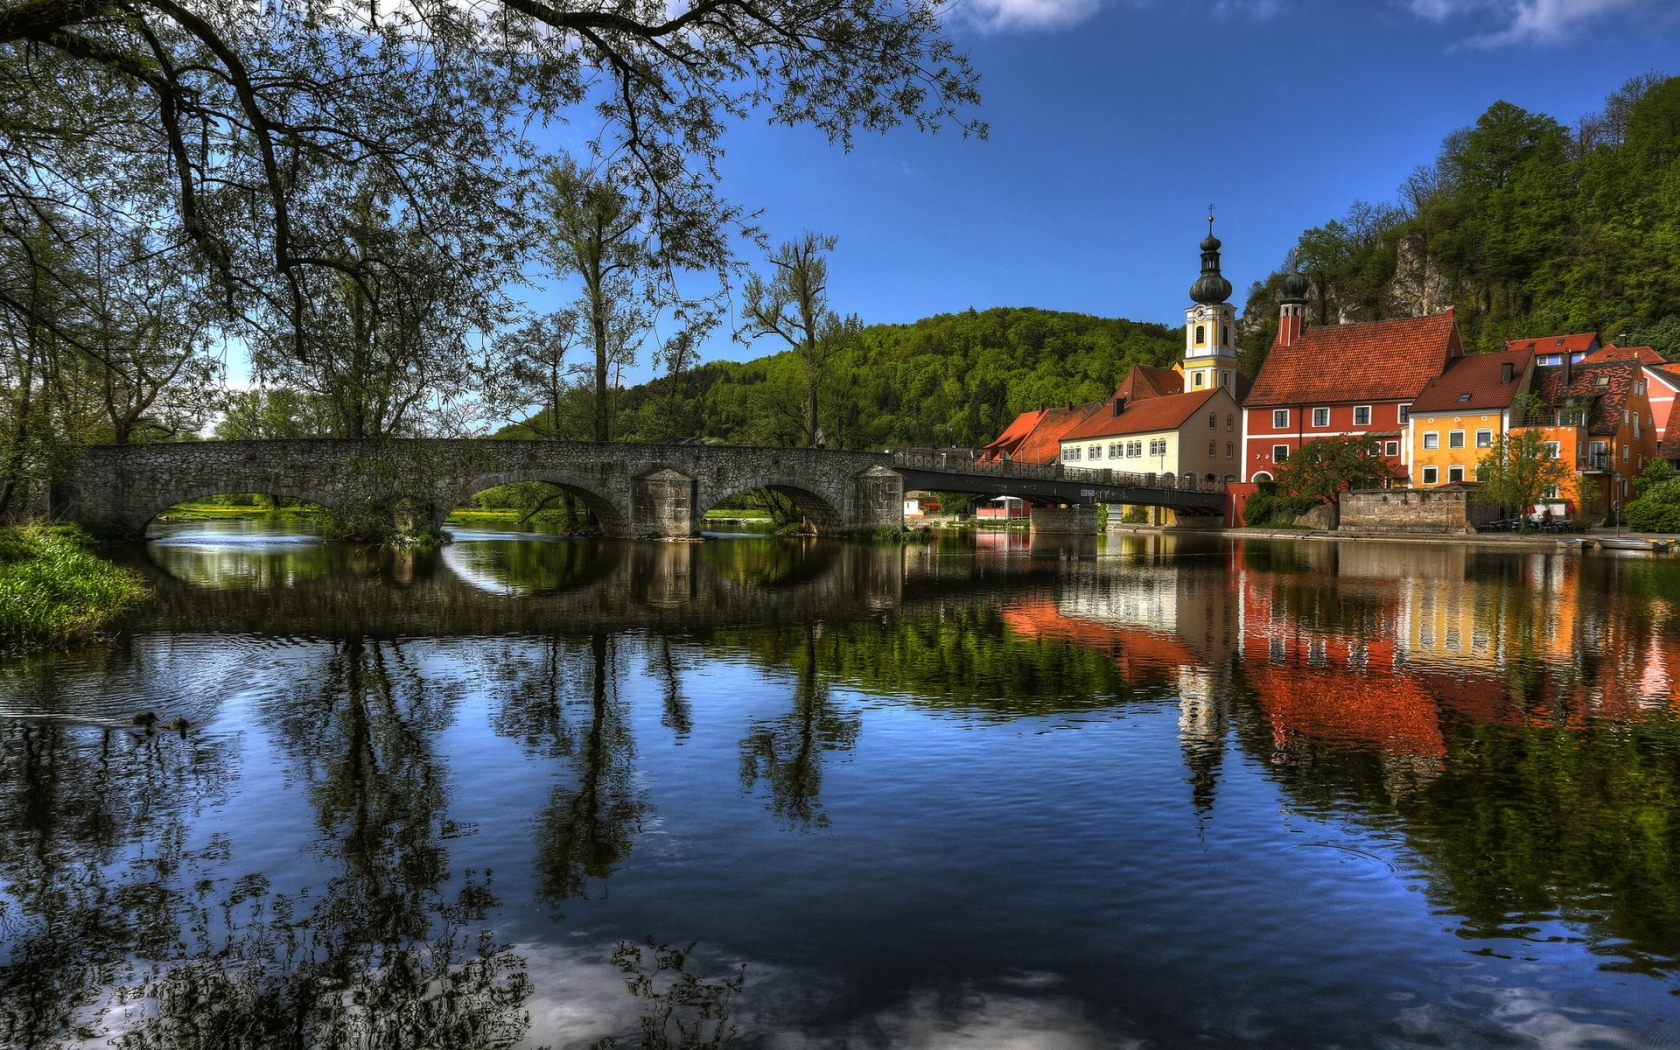 Fantastic bridge in a riverside town Hdr wallpaper 1680x1050